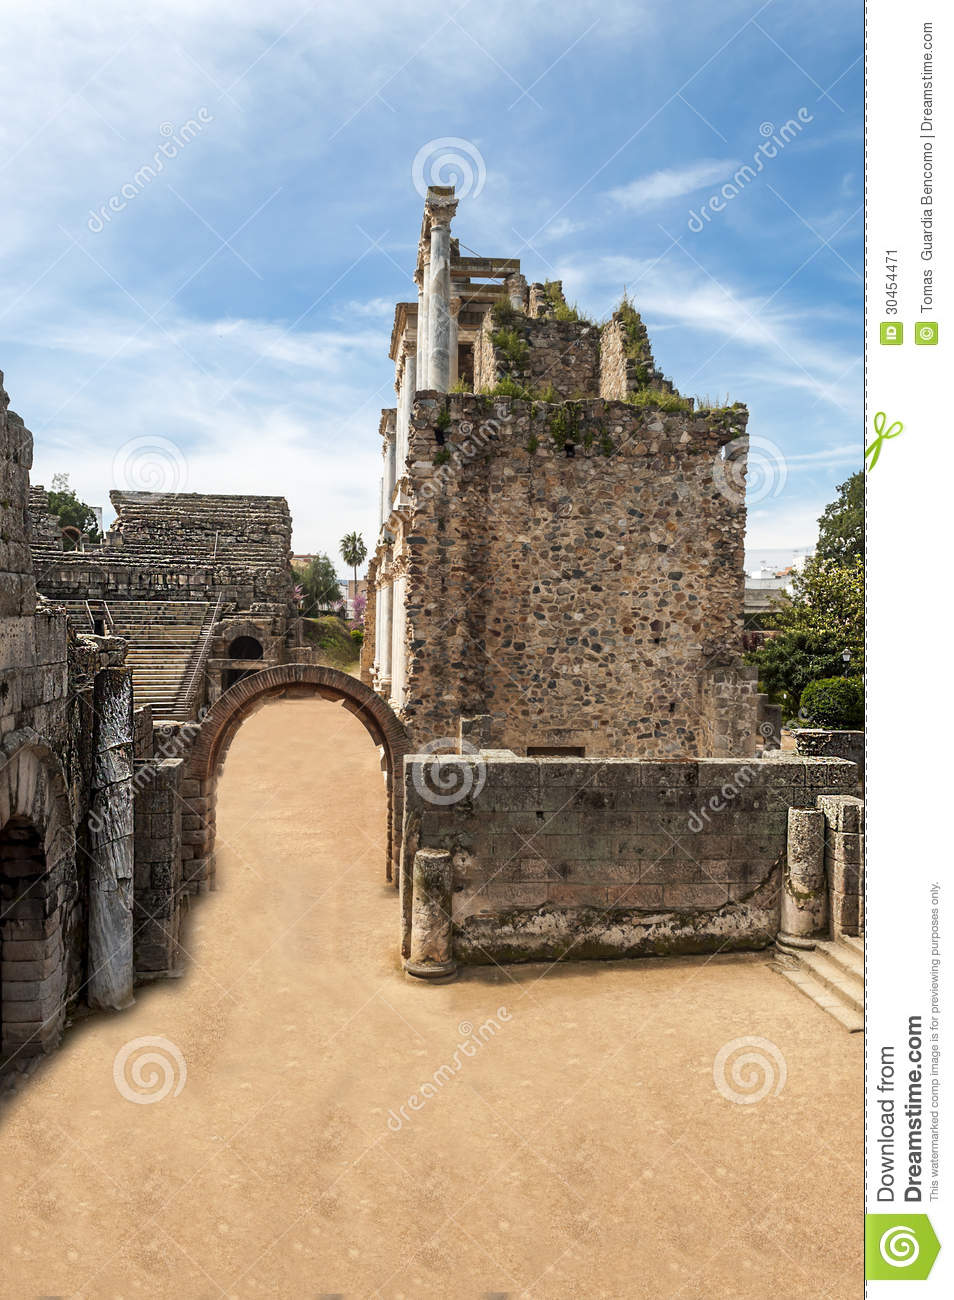 Courtyard Entrance To The Roman Amphitheater Stock Image ...